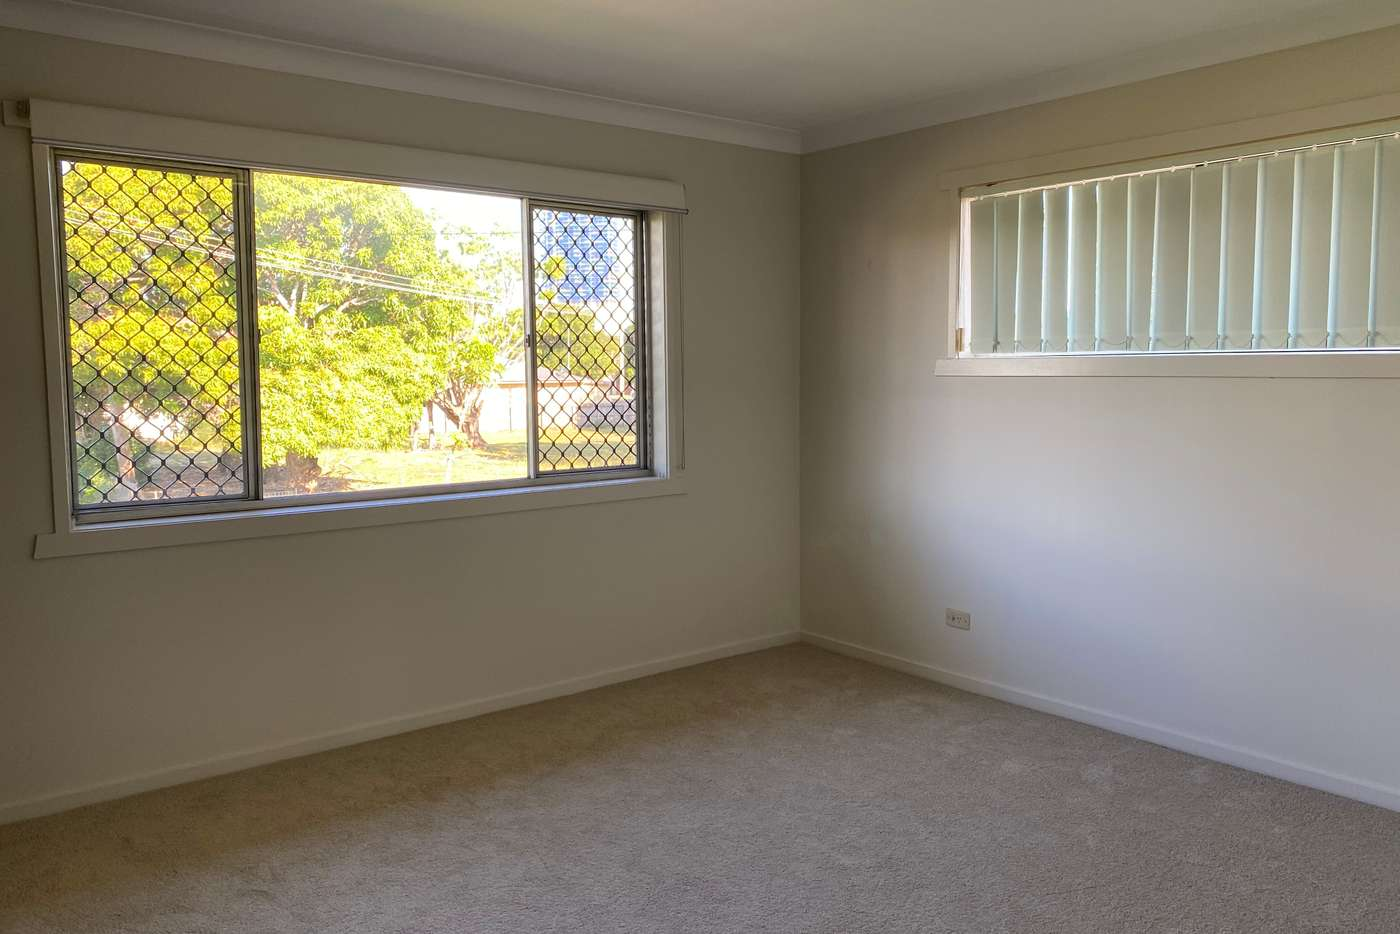 Seventh view of Homely house listing, 4A Tuesley Court, Southport QLD 4215